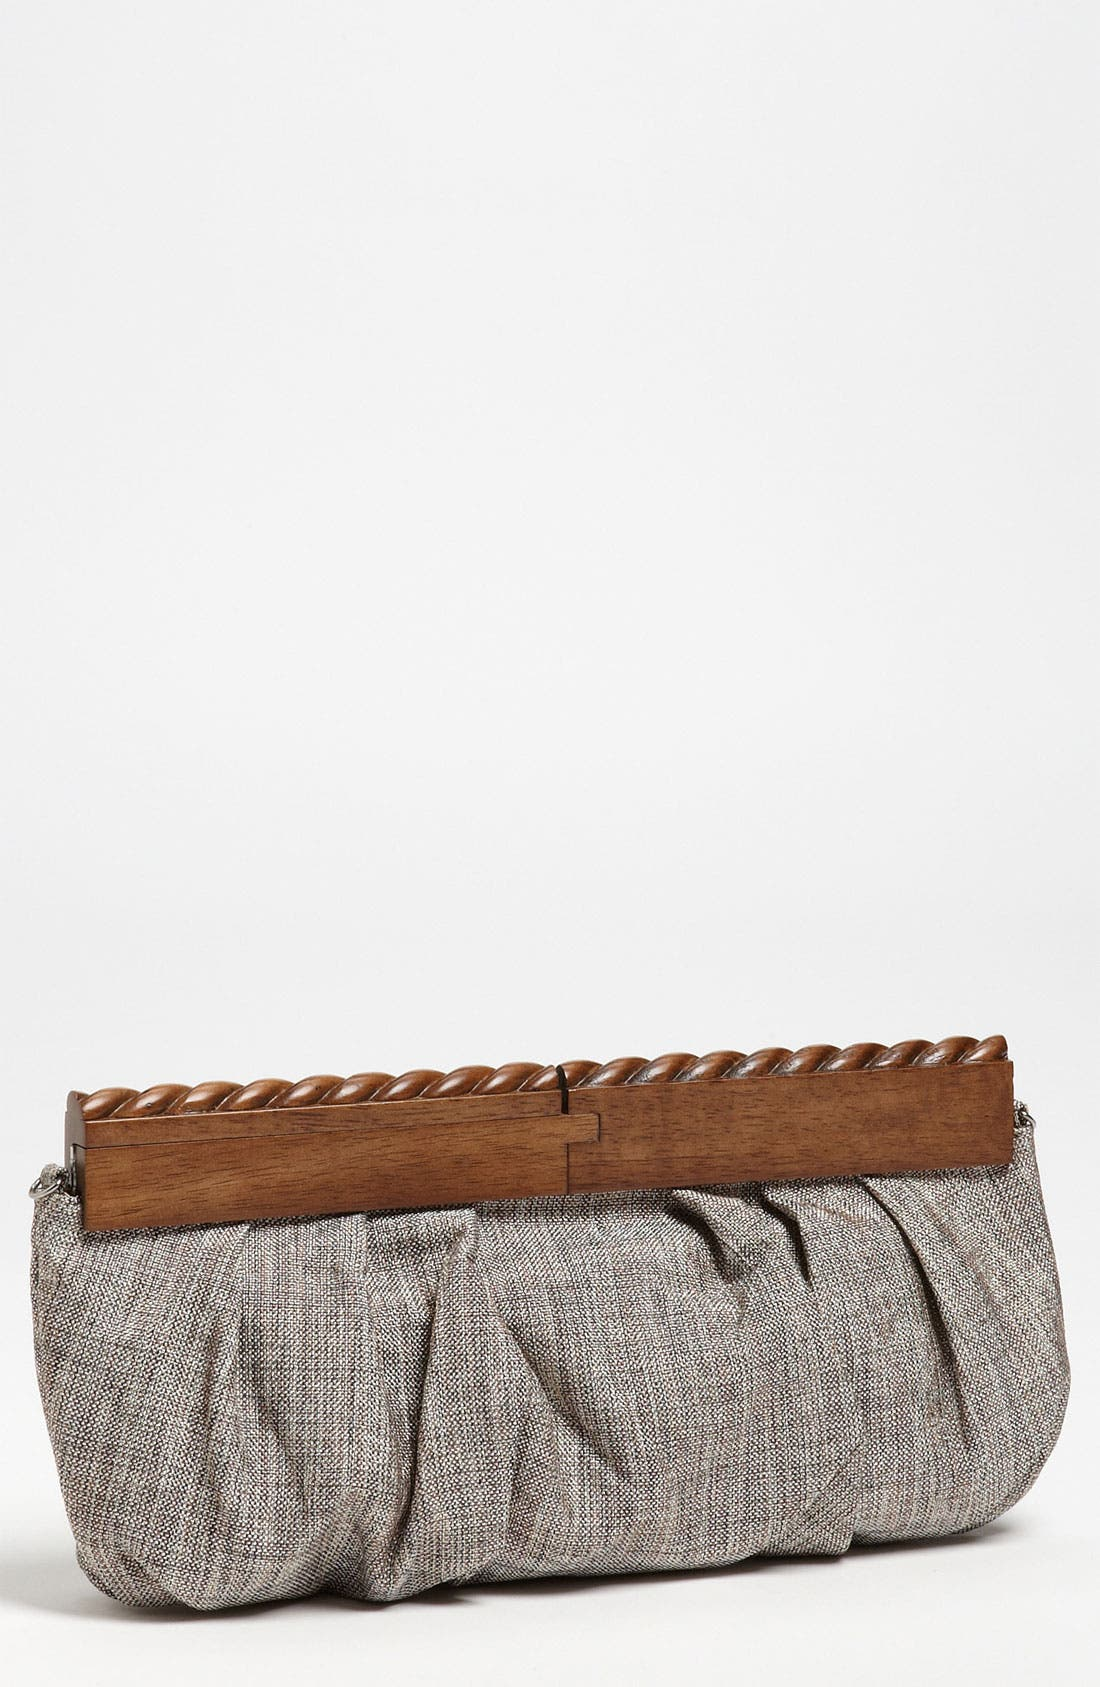 Alternate Image 1 Selected - SR Squared by Sondra Roberts Linen & Wood Clutch